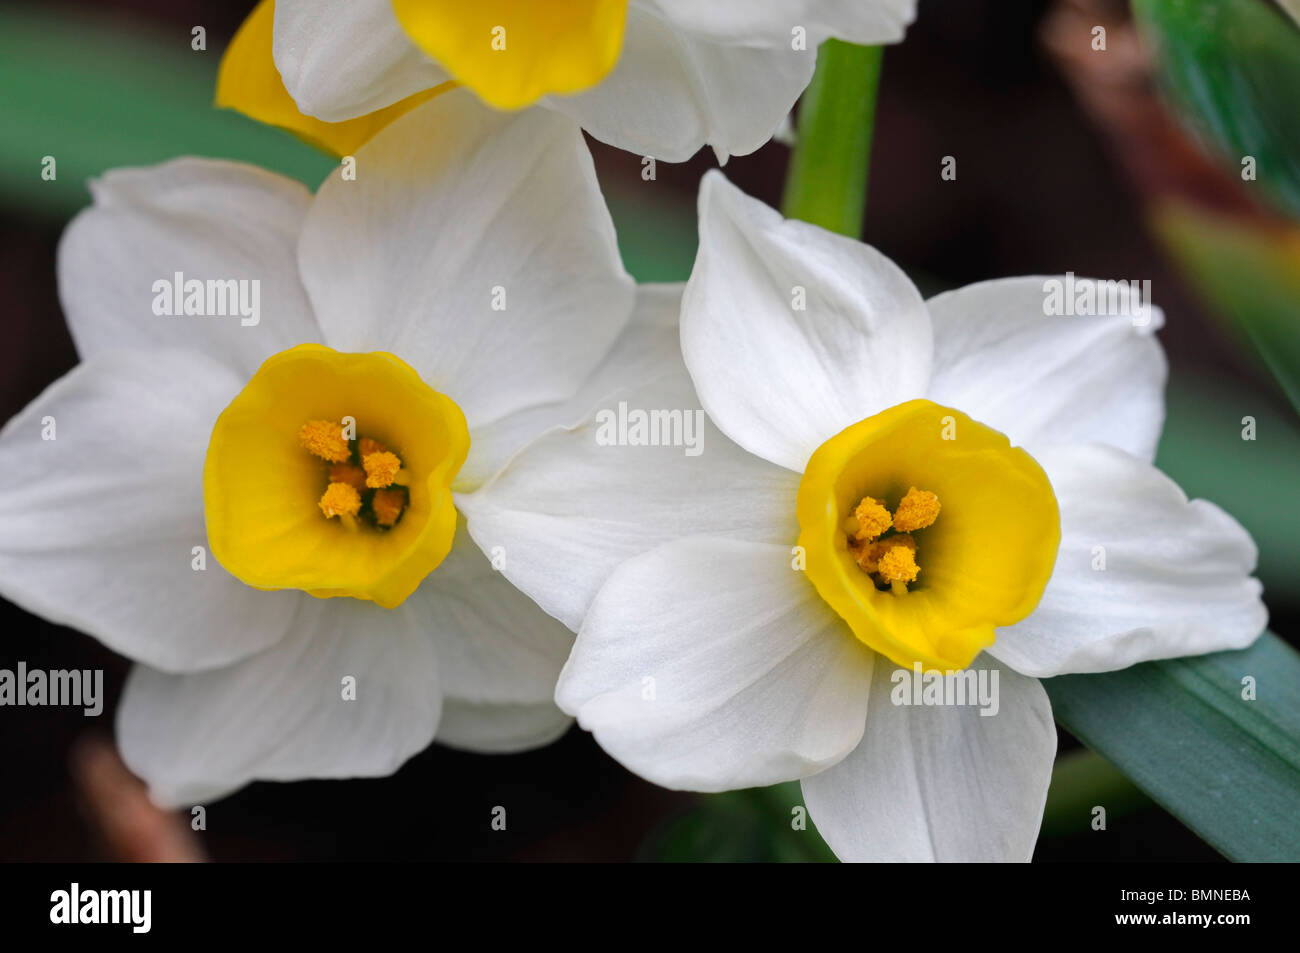 Narcissus minnow daffodil division 8 white pale yellow petals yellow narcissus minnow daffodil division 8 white pale yellow petals yellow cup macro photo close up flower bloom blossom mightylinksfo